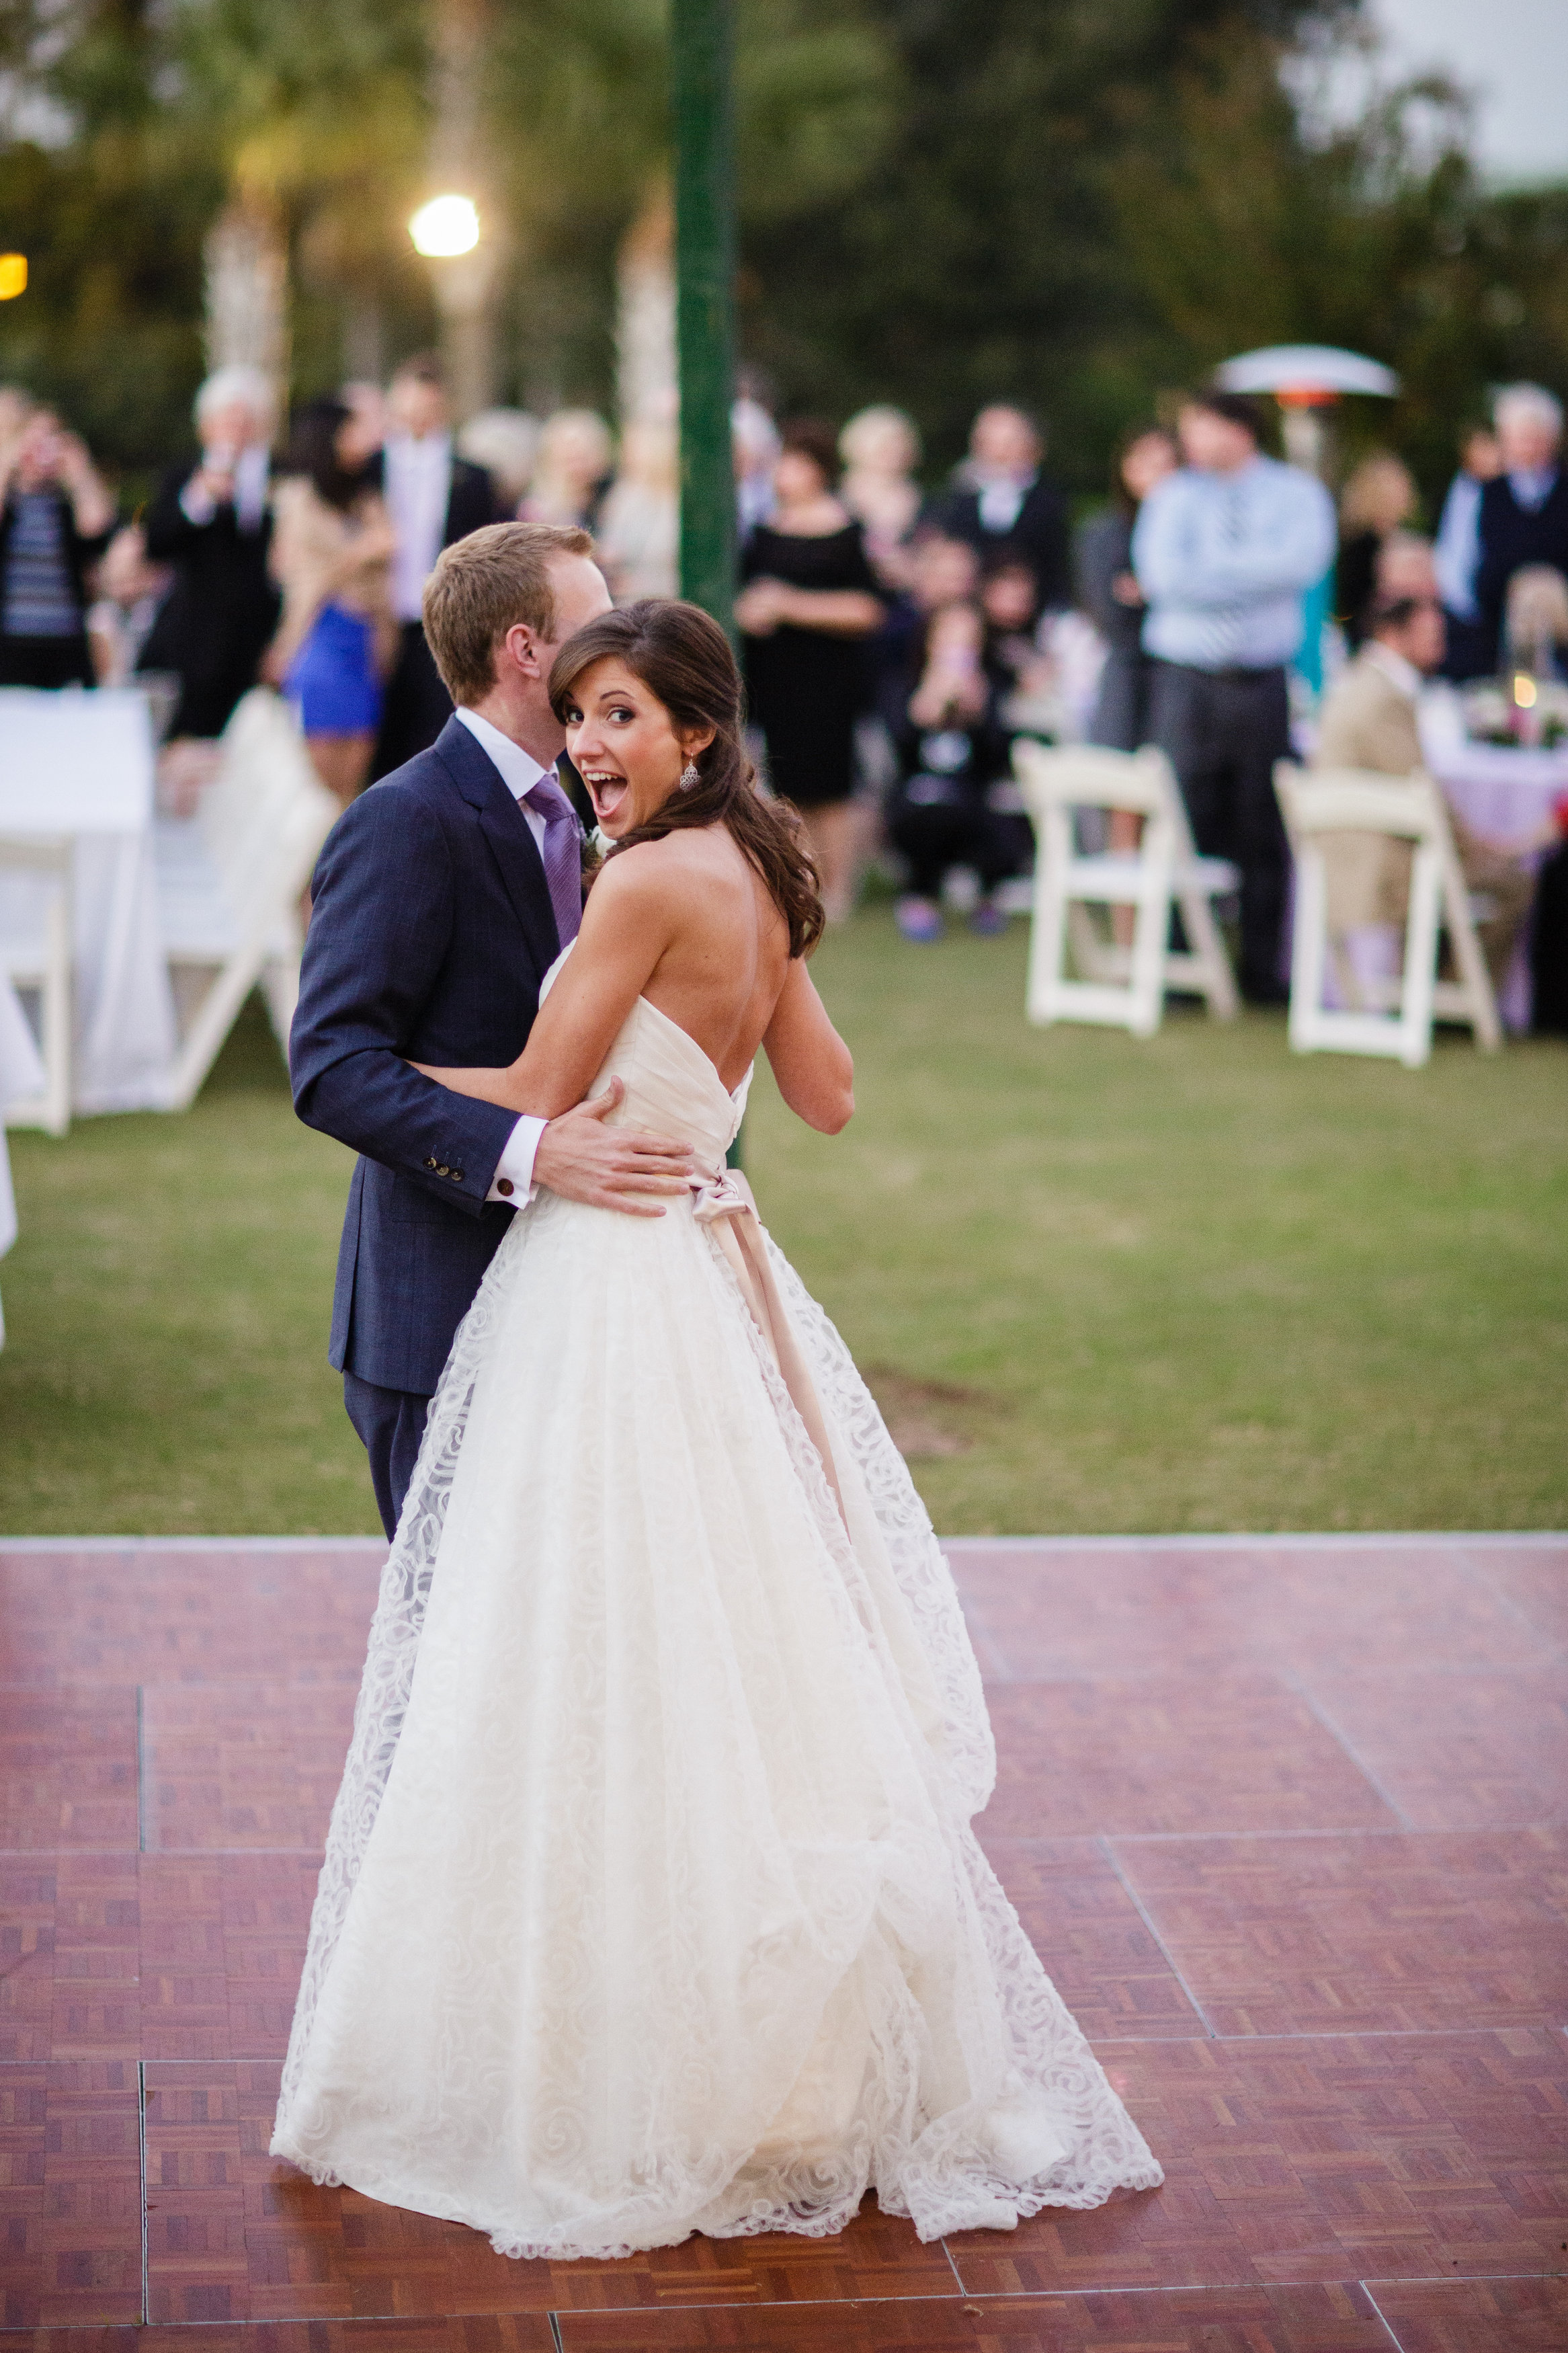 fabulous love captured by  Sarah DeShaw Photography